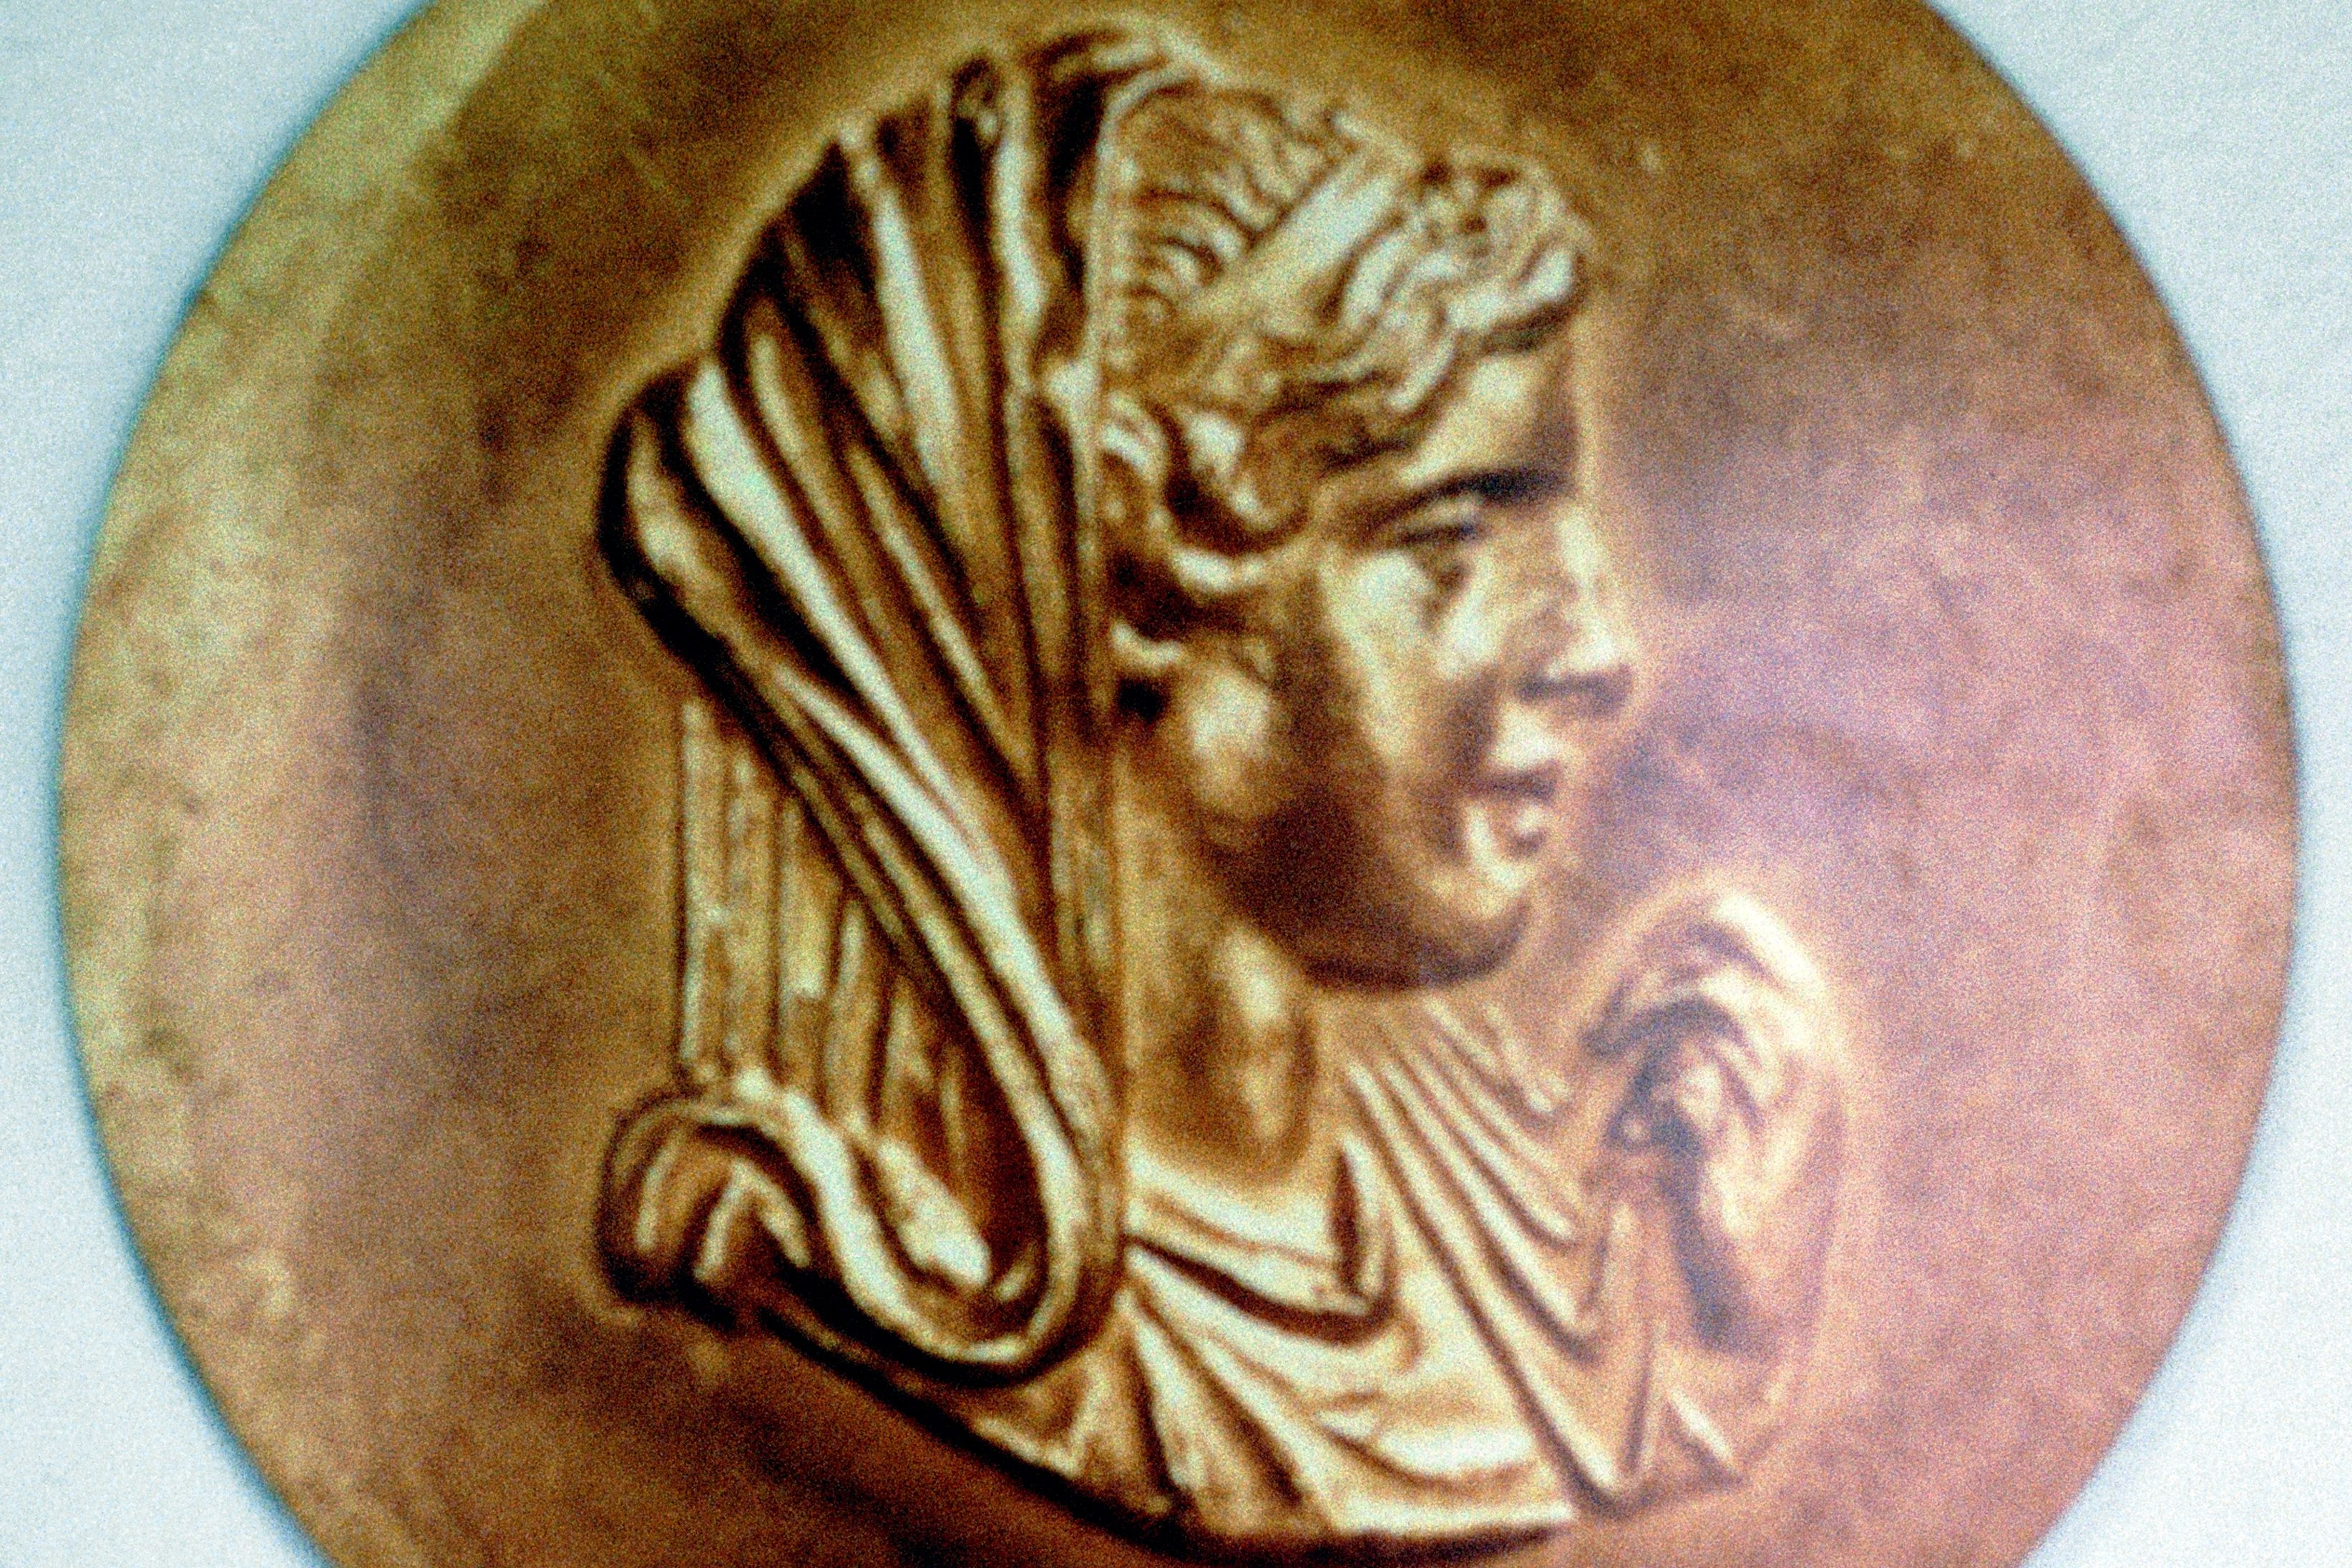 Medallion depicting Olympias, queen of Macedon